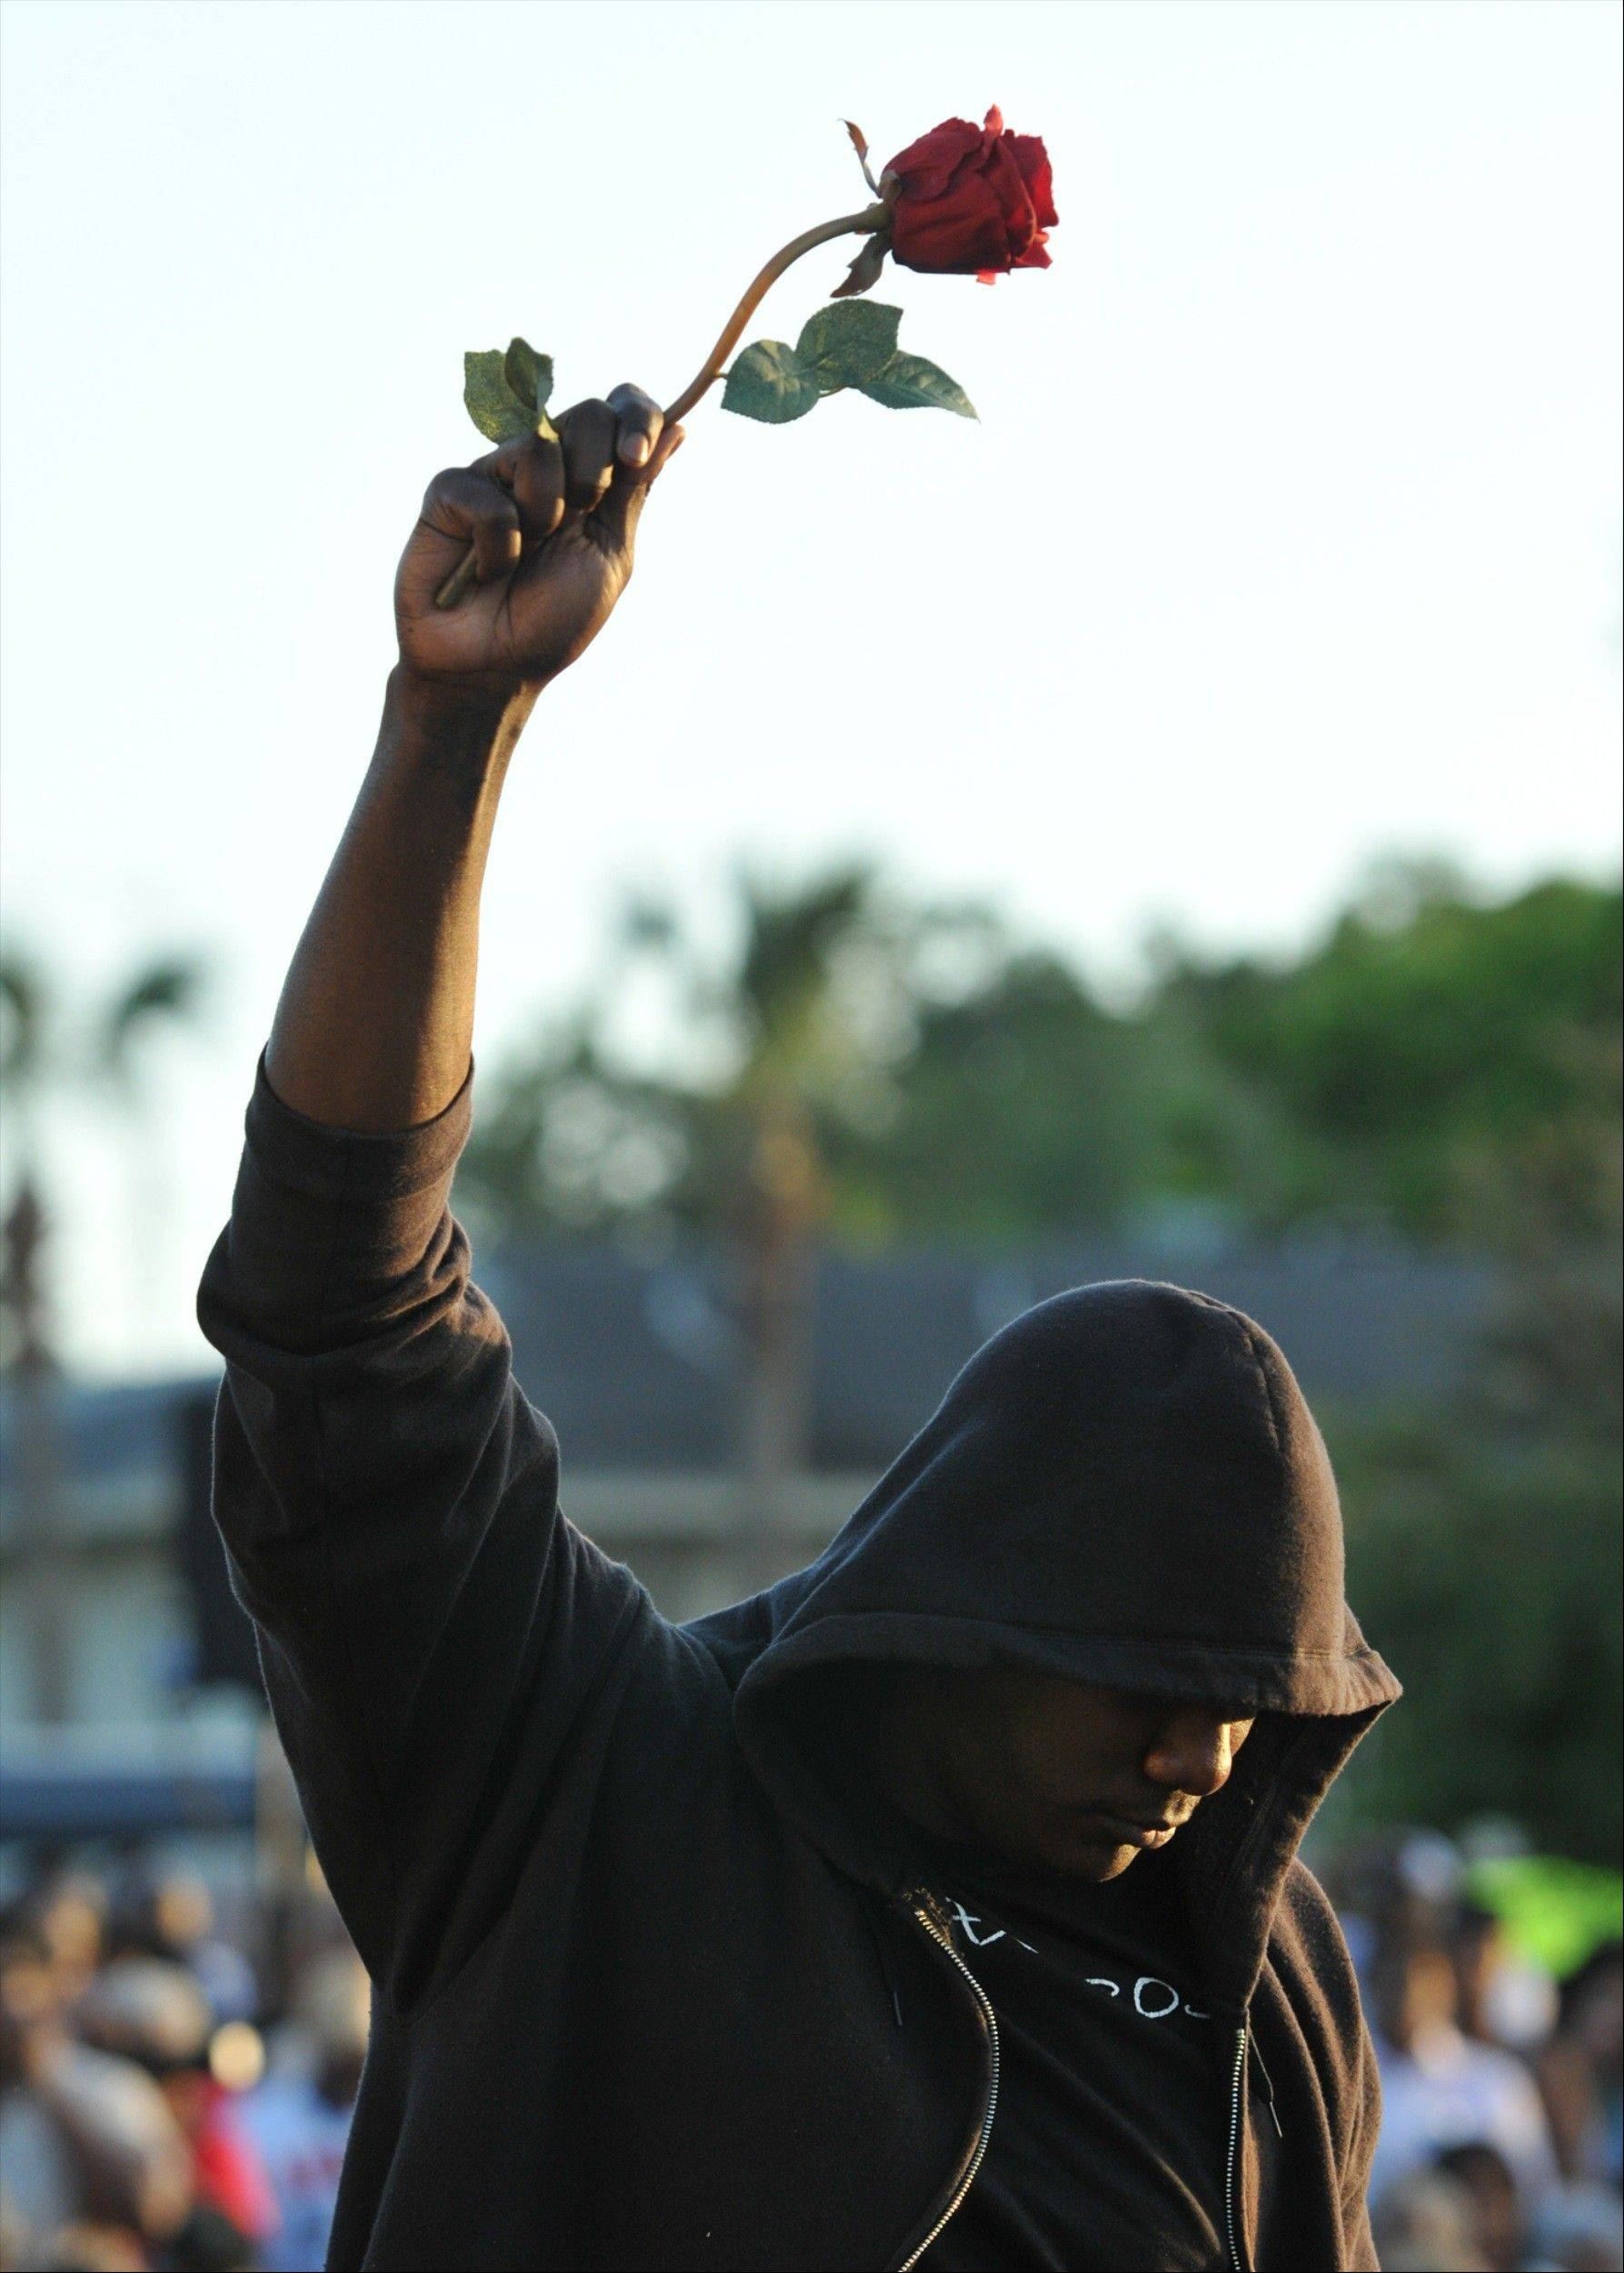 Social media aids angst over Trayvon Martin case